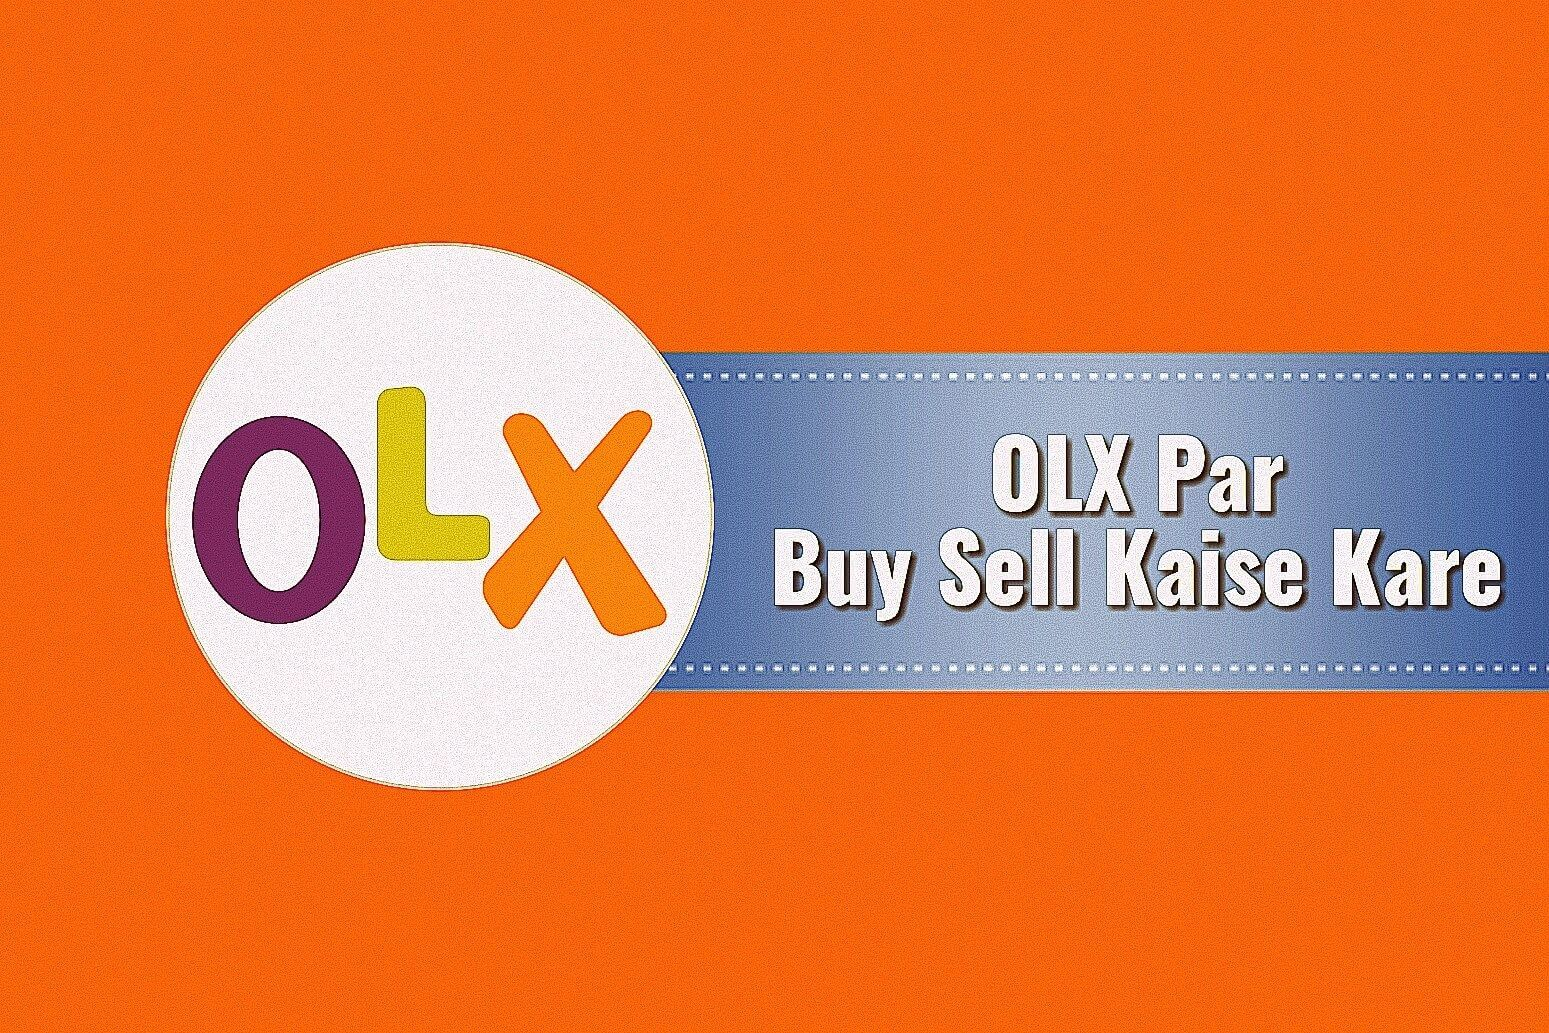 Olx-Buy-Sell